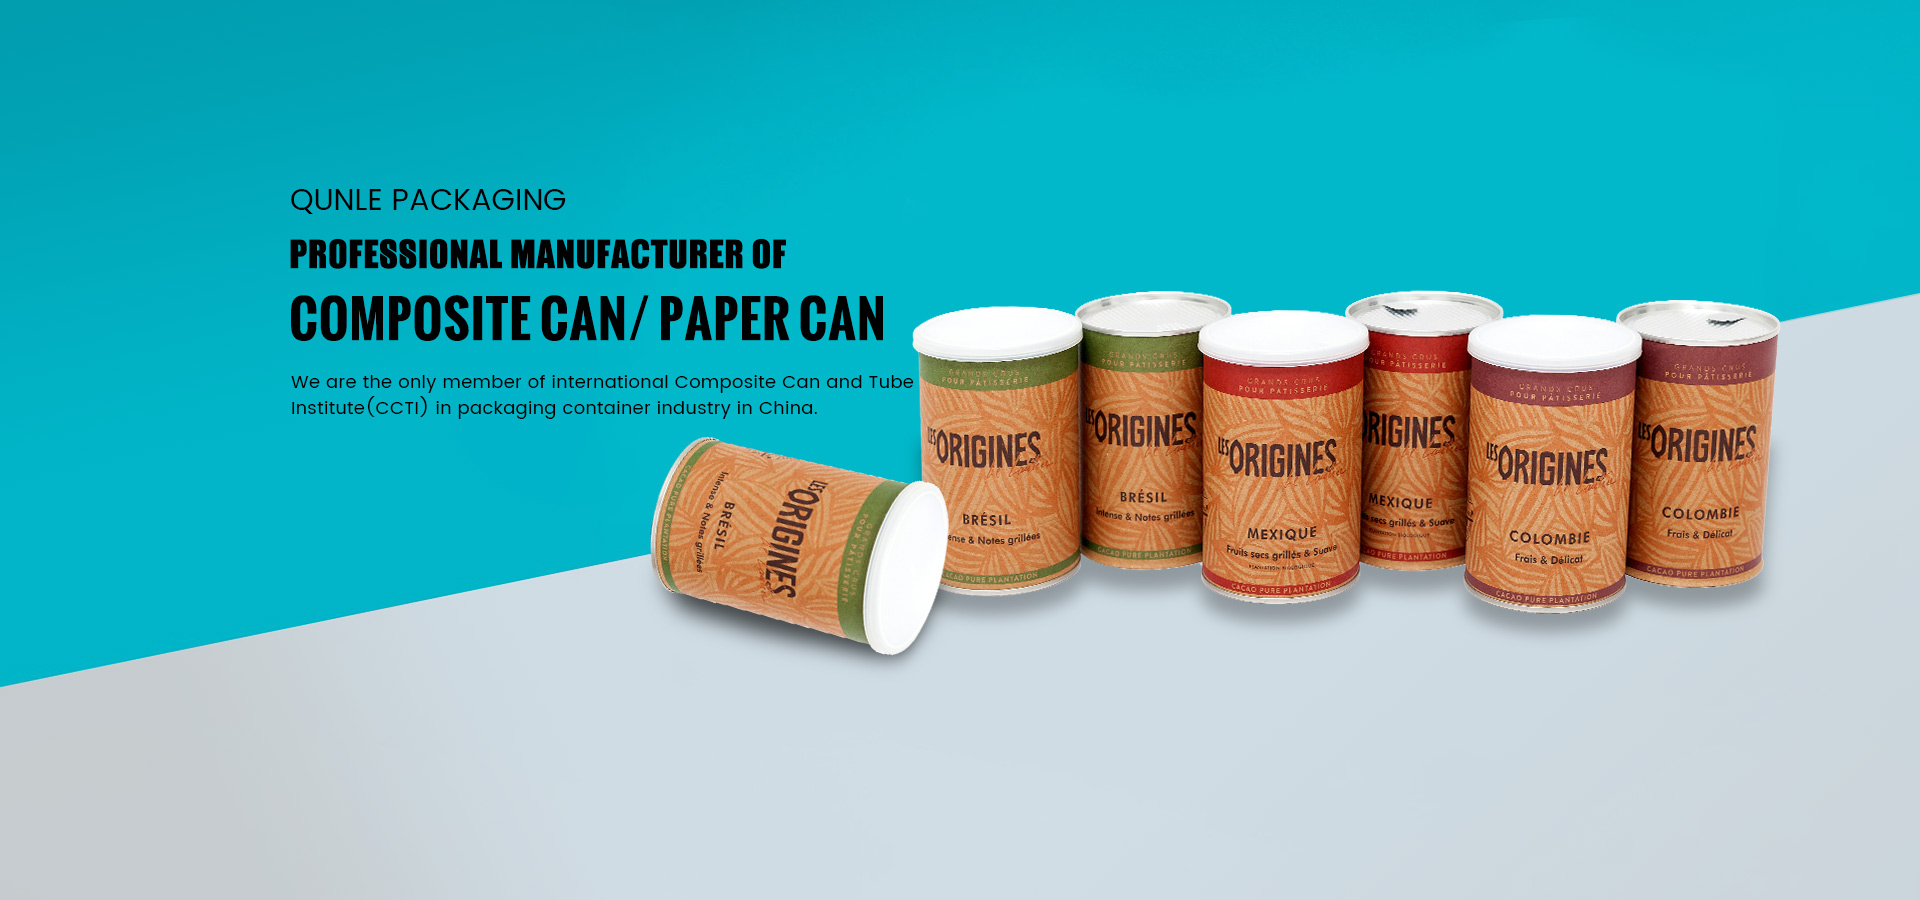 What are the advantages of kraft paper packaging materials?